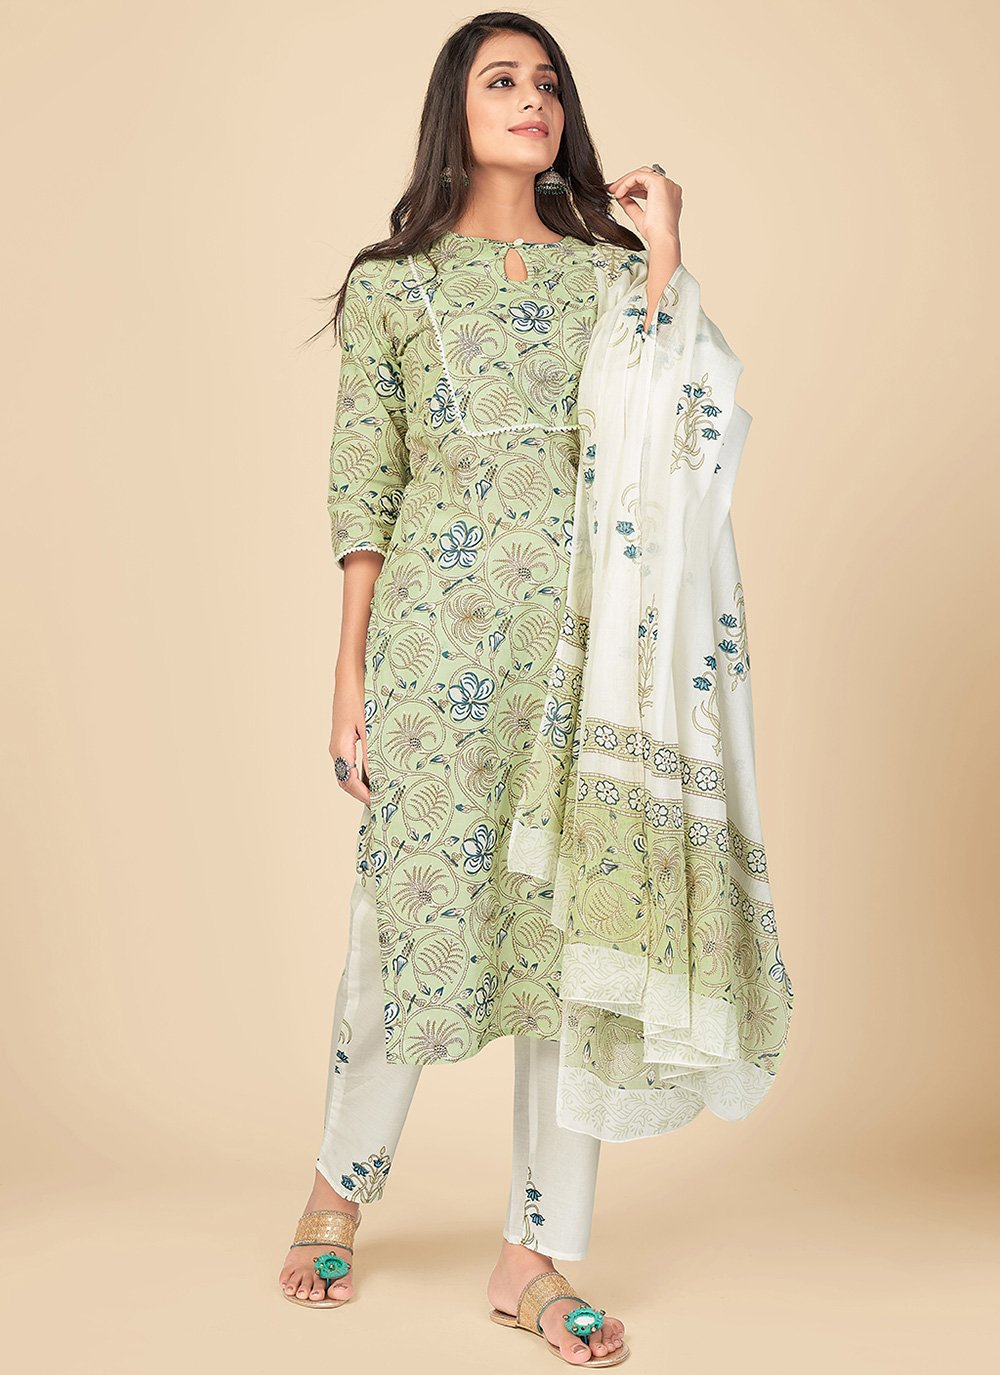 Cotton Print Pant Style Suit in Green